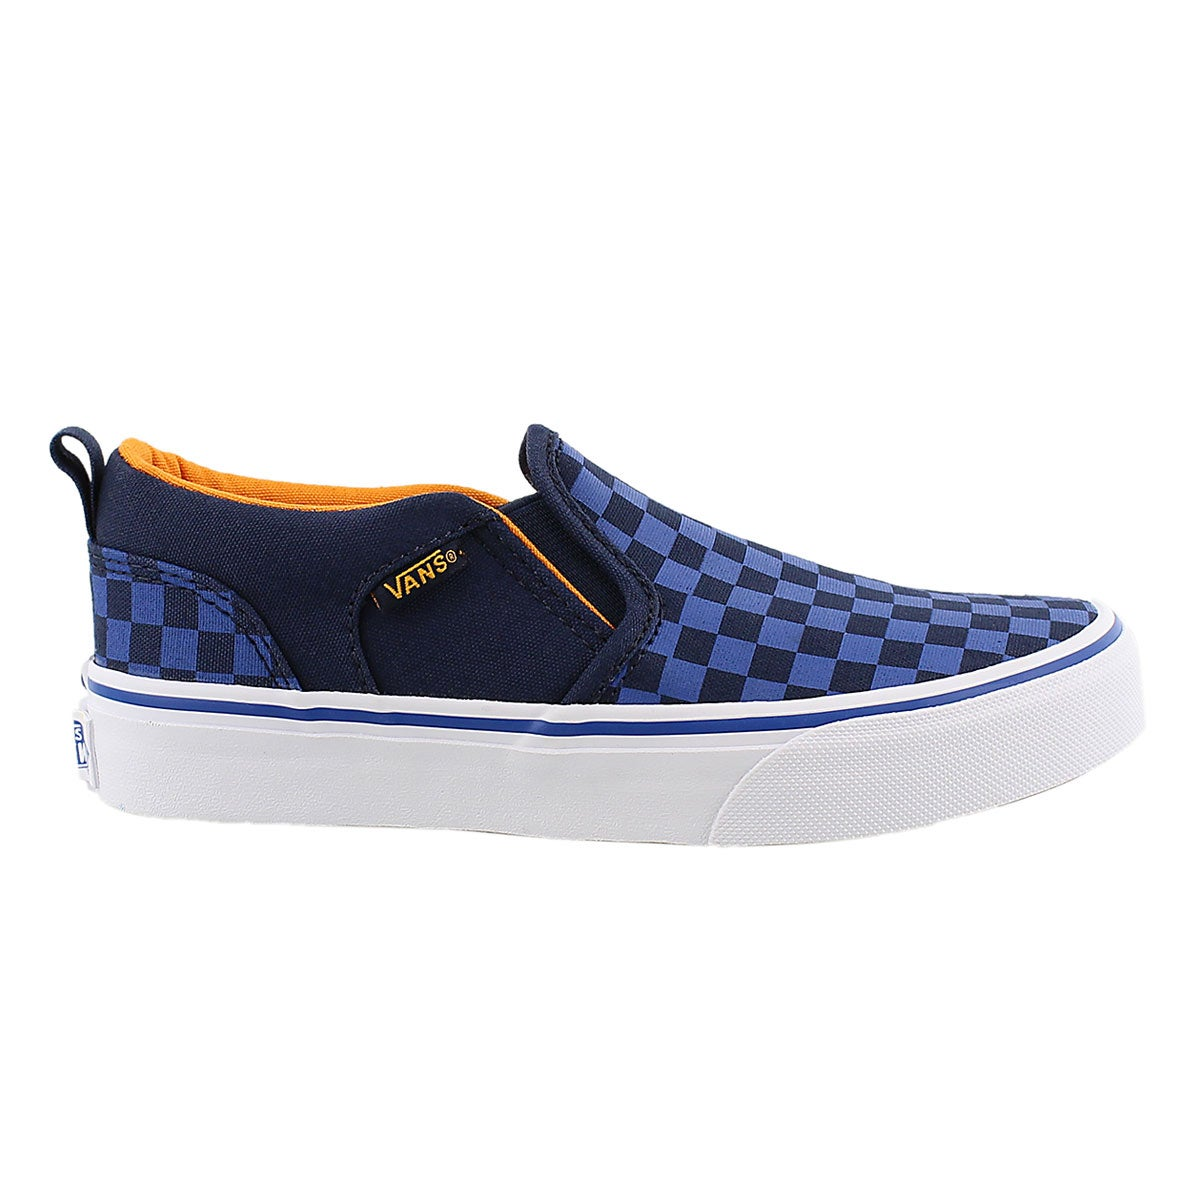 Bys Asher blue checkered slip on sneaker